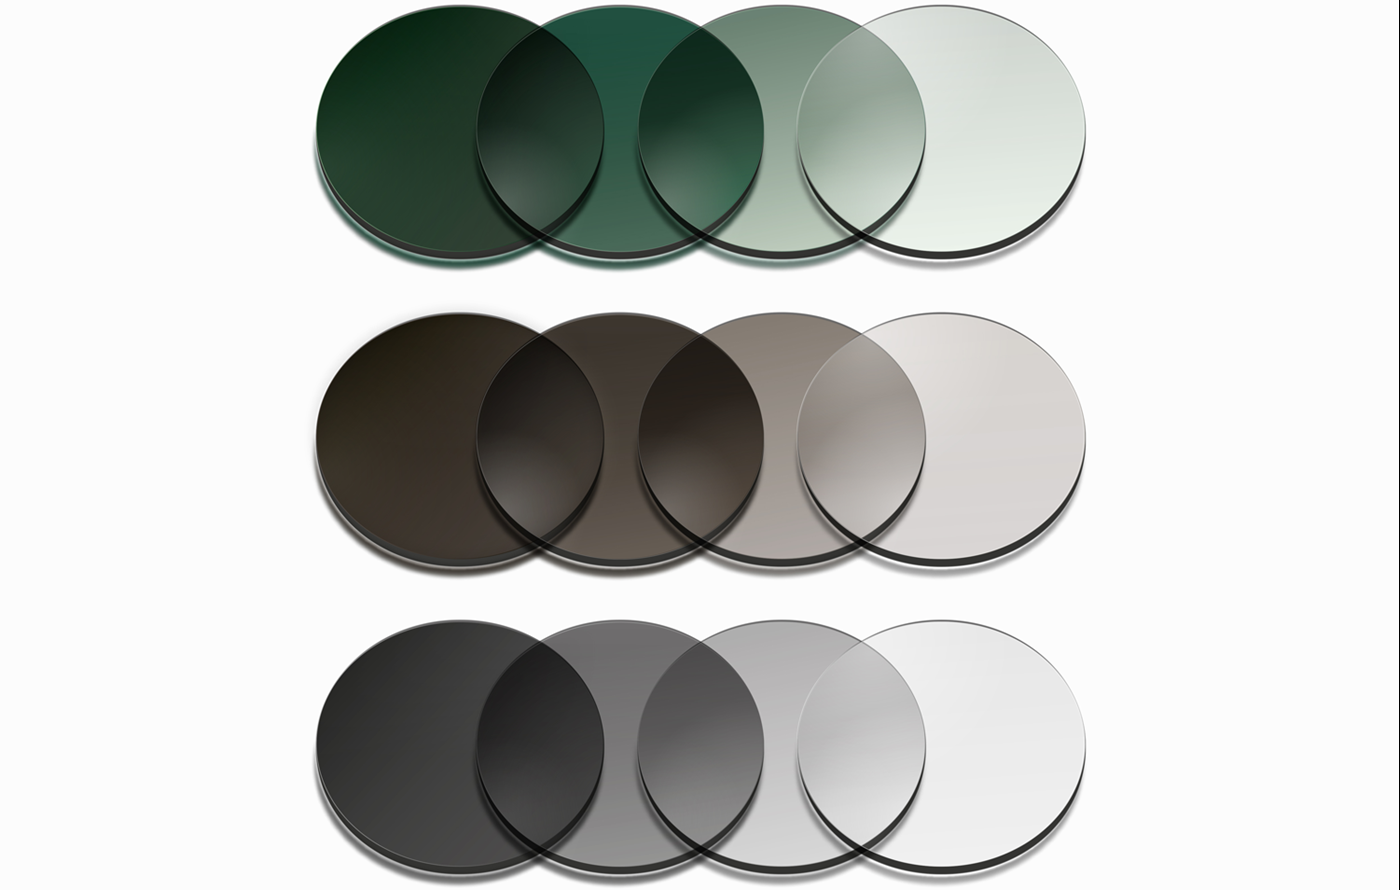 Three different coloured lens tints from dark to light